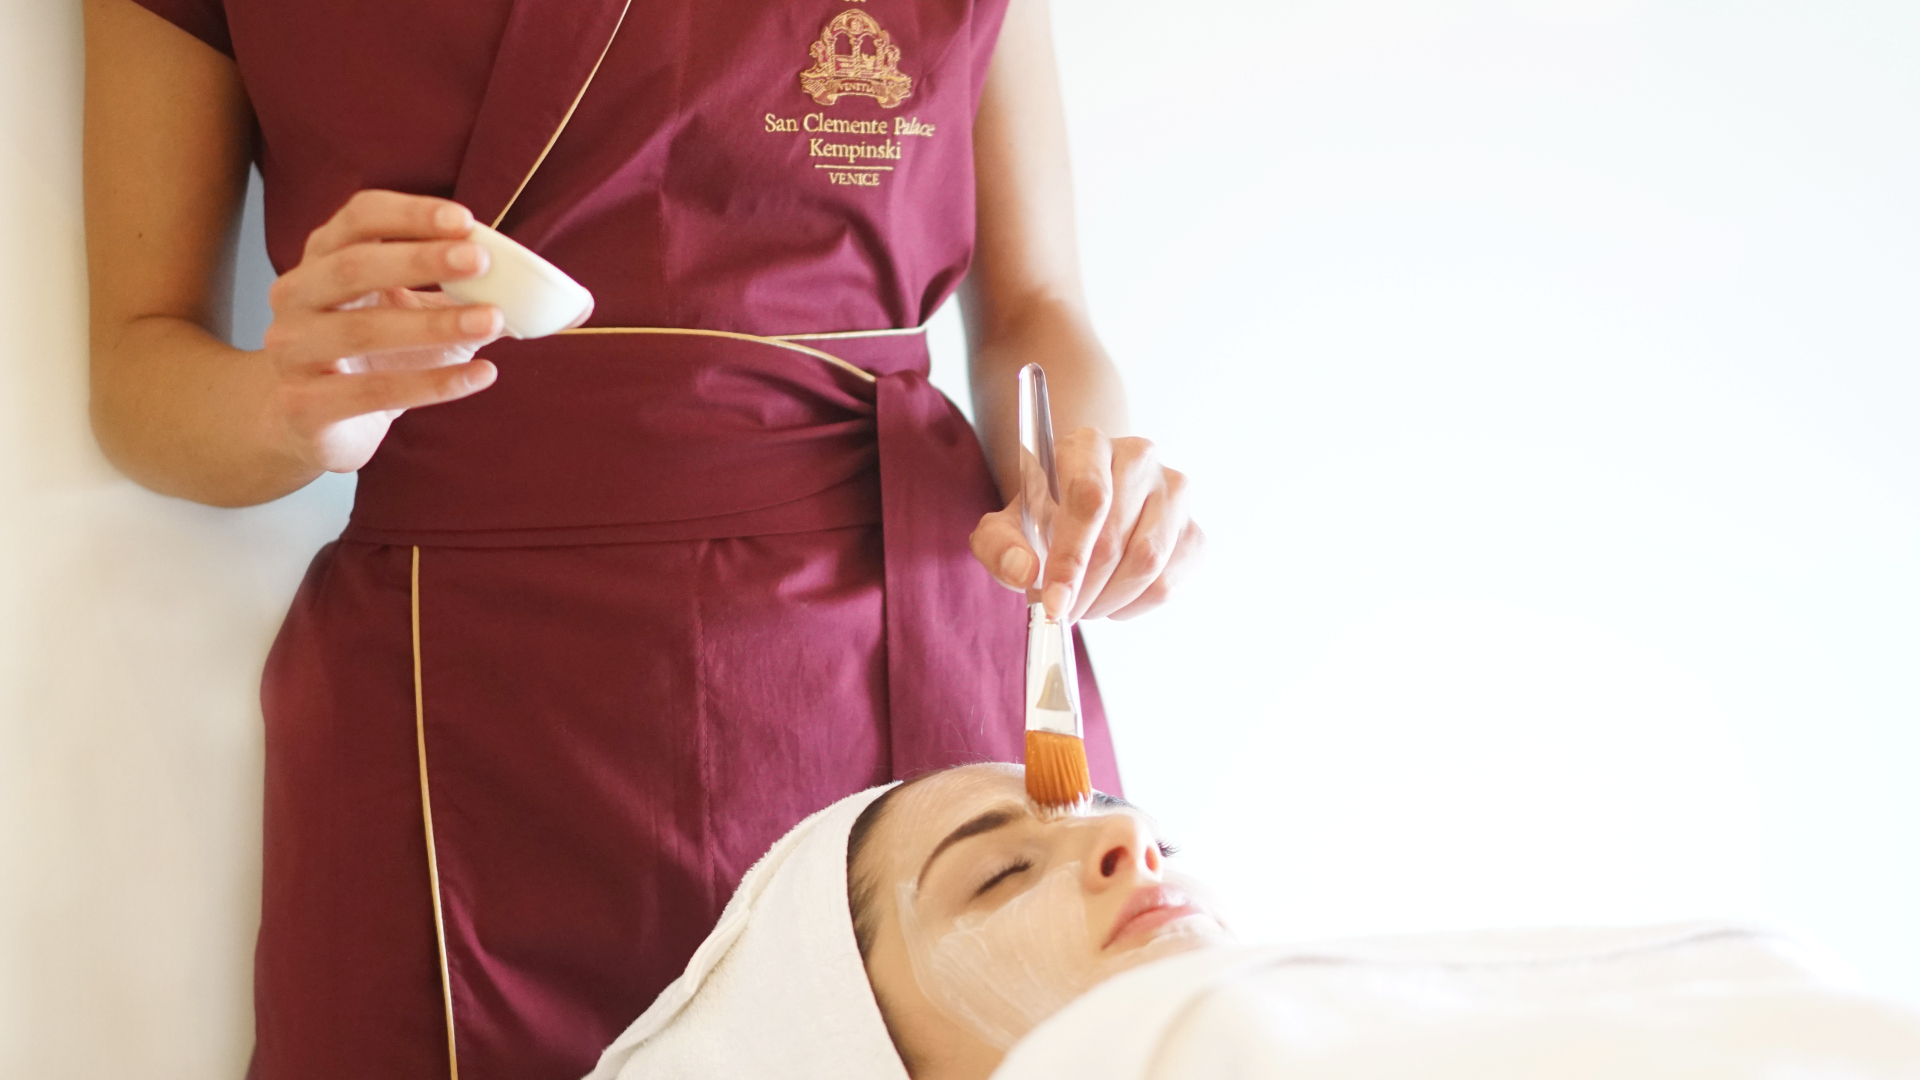 Face treatment - The Merchant of Venice SPA | San Clemente Palace Kempinski